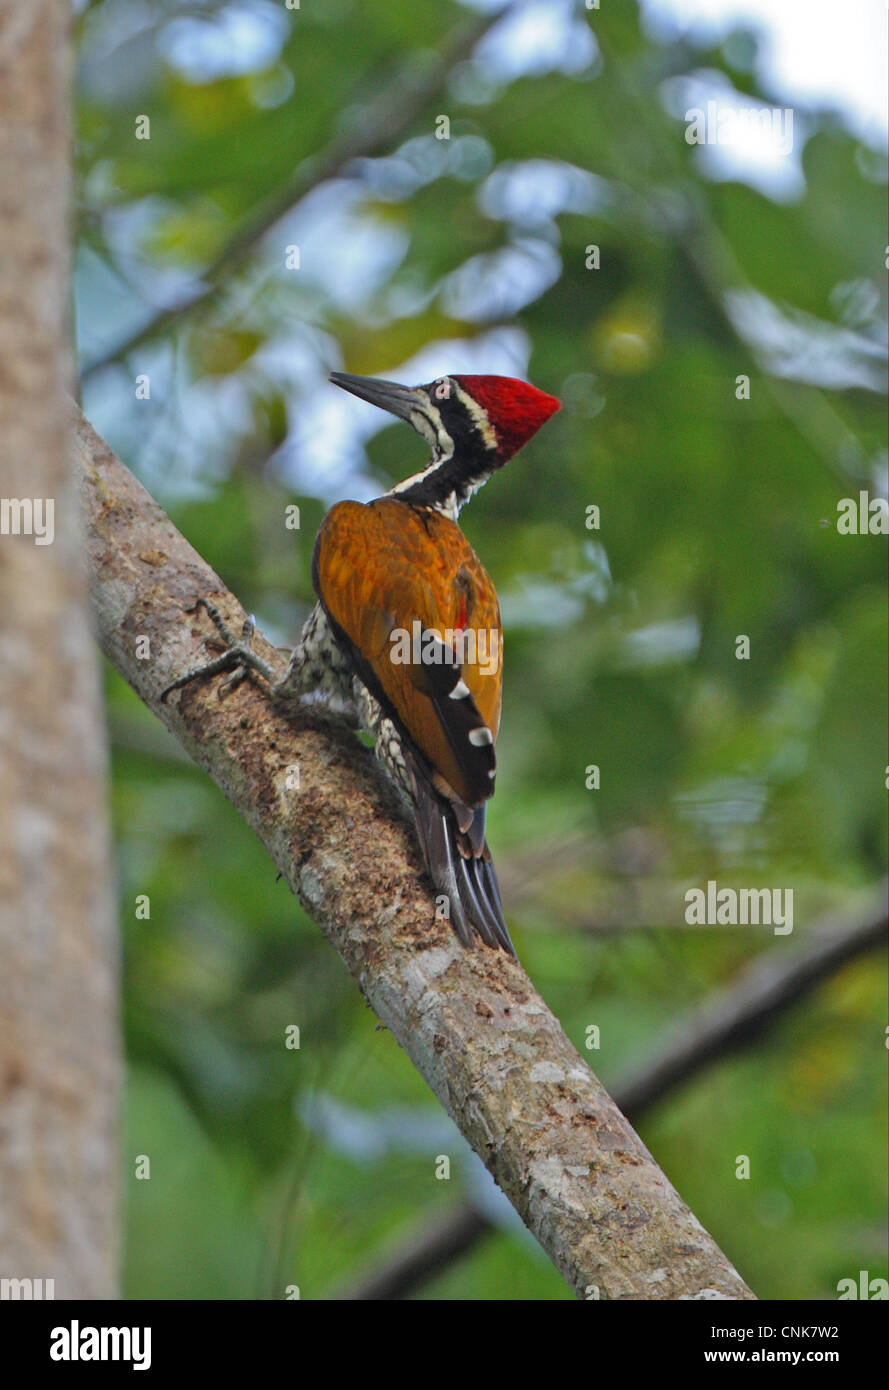 Greater Flameback Chrysocolaptes lucidus guttacristatus adult male clinging to tree trunk Kaeng Krachan N.P Thailand - Stock Image